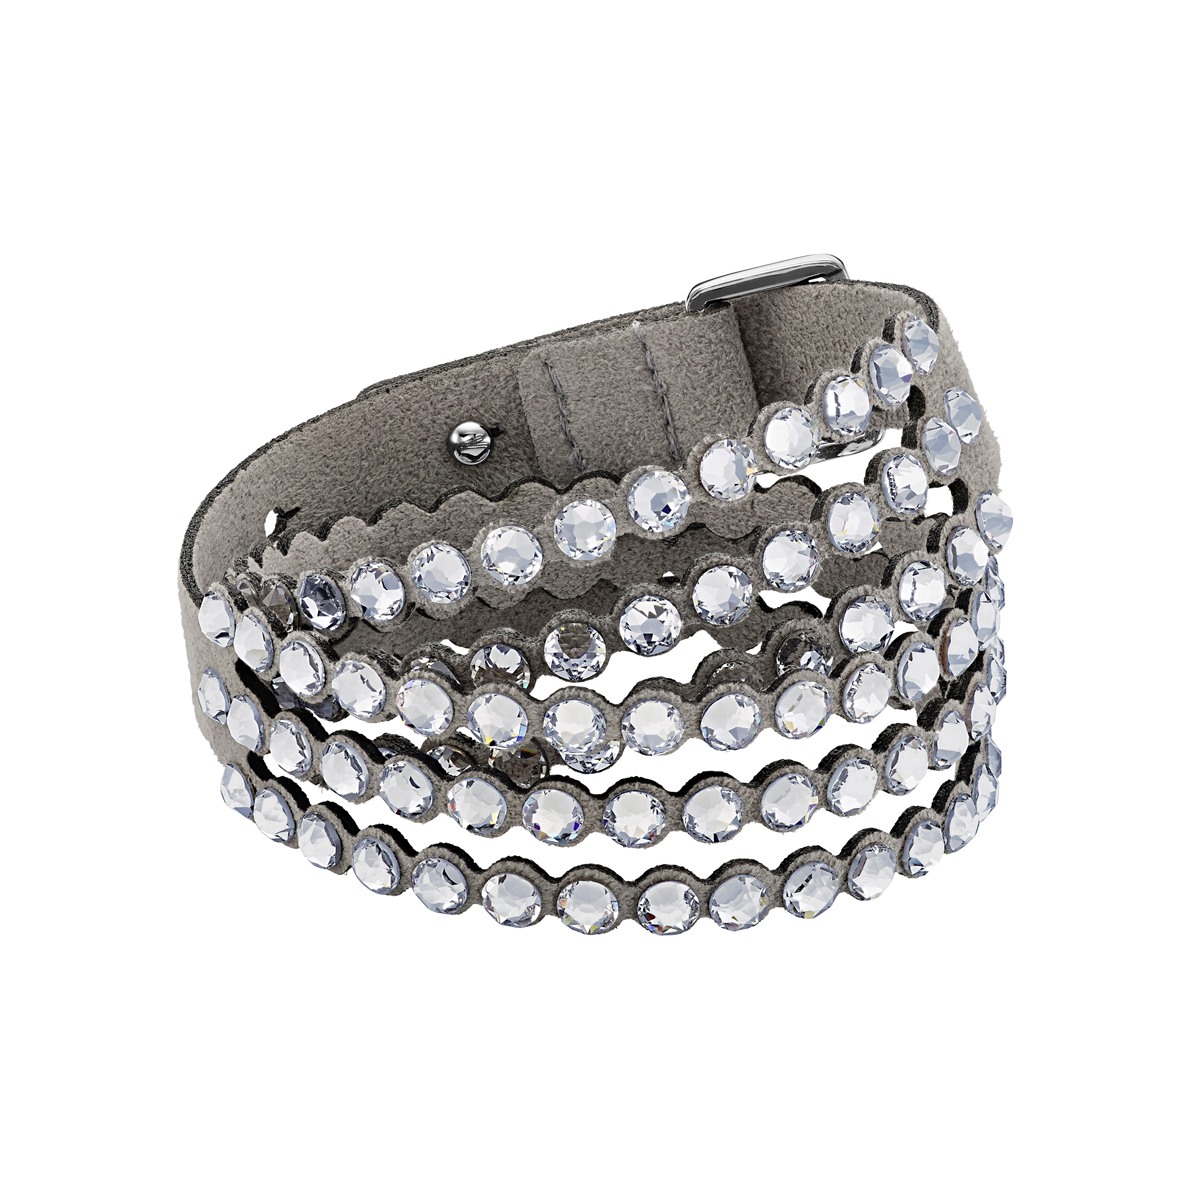 Swarovski Power Collection Bracelet, White